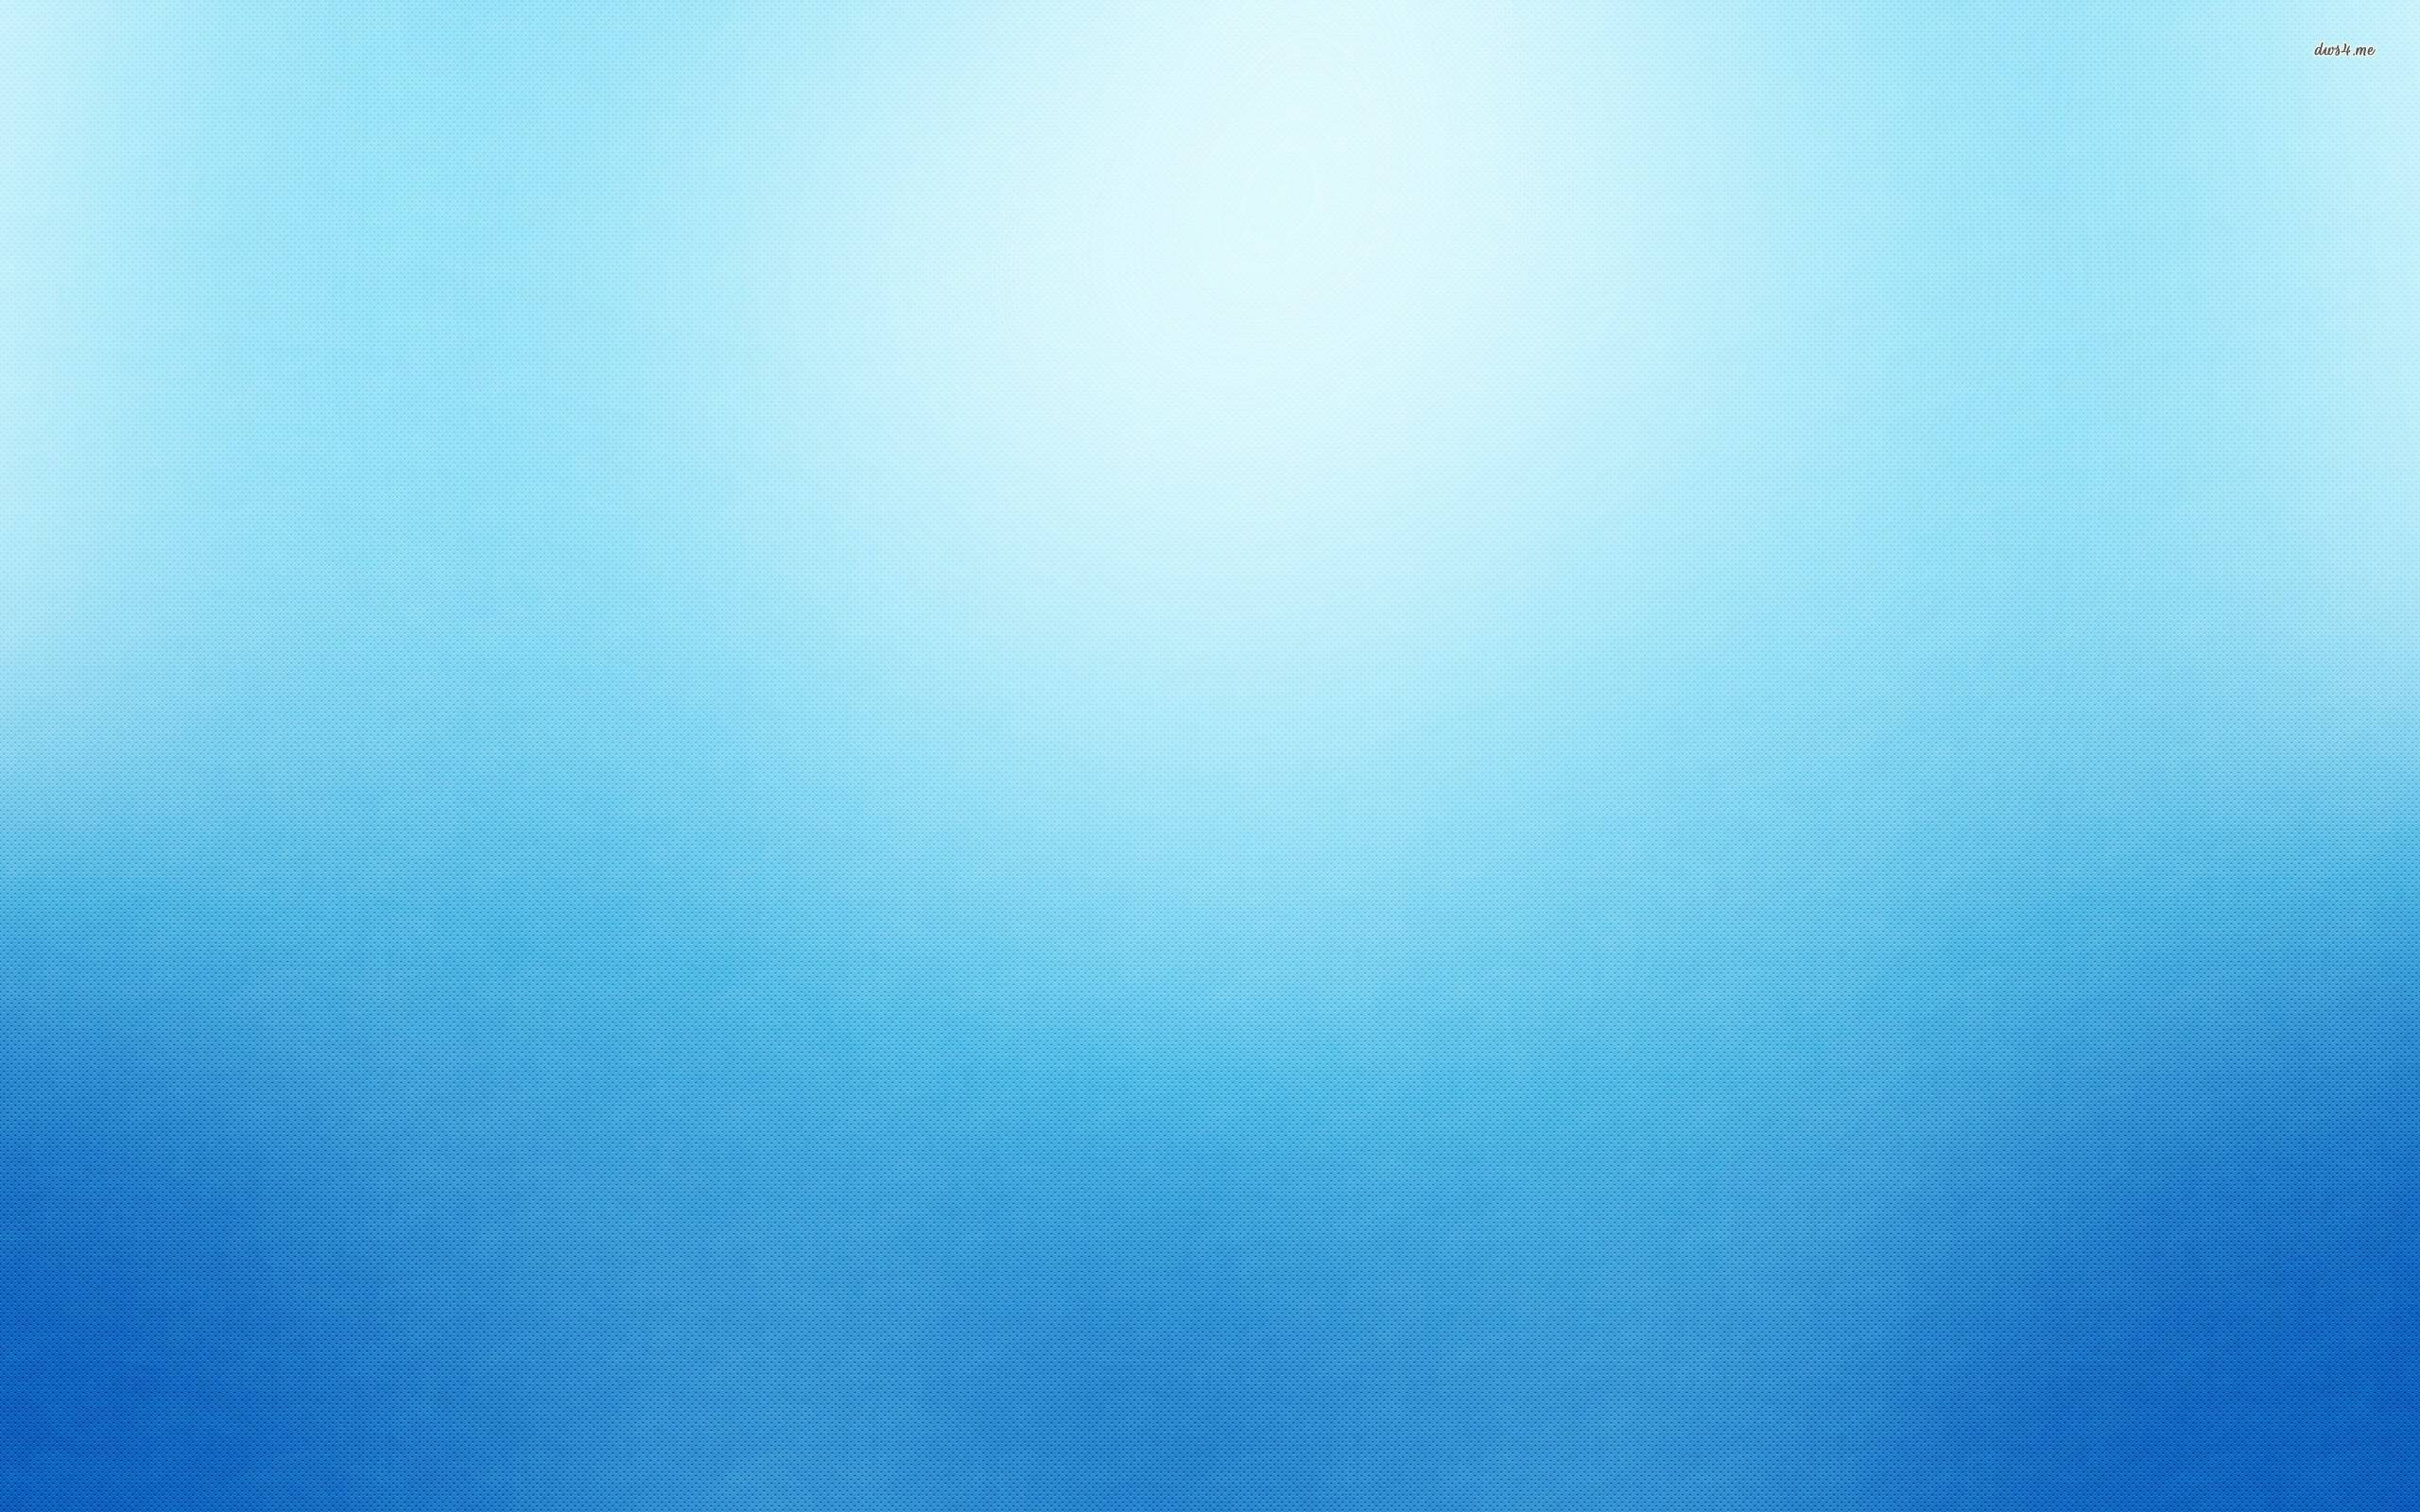 Light Blue Background Wallpaper